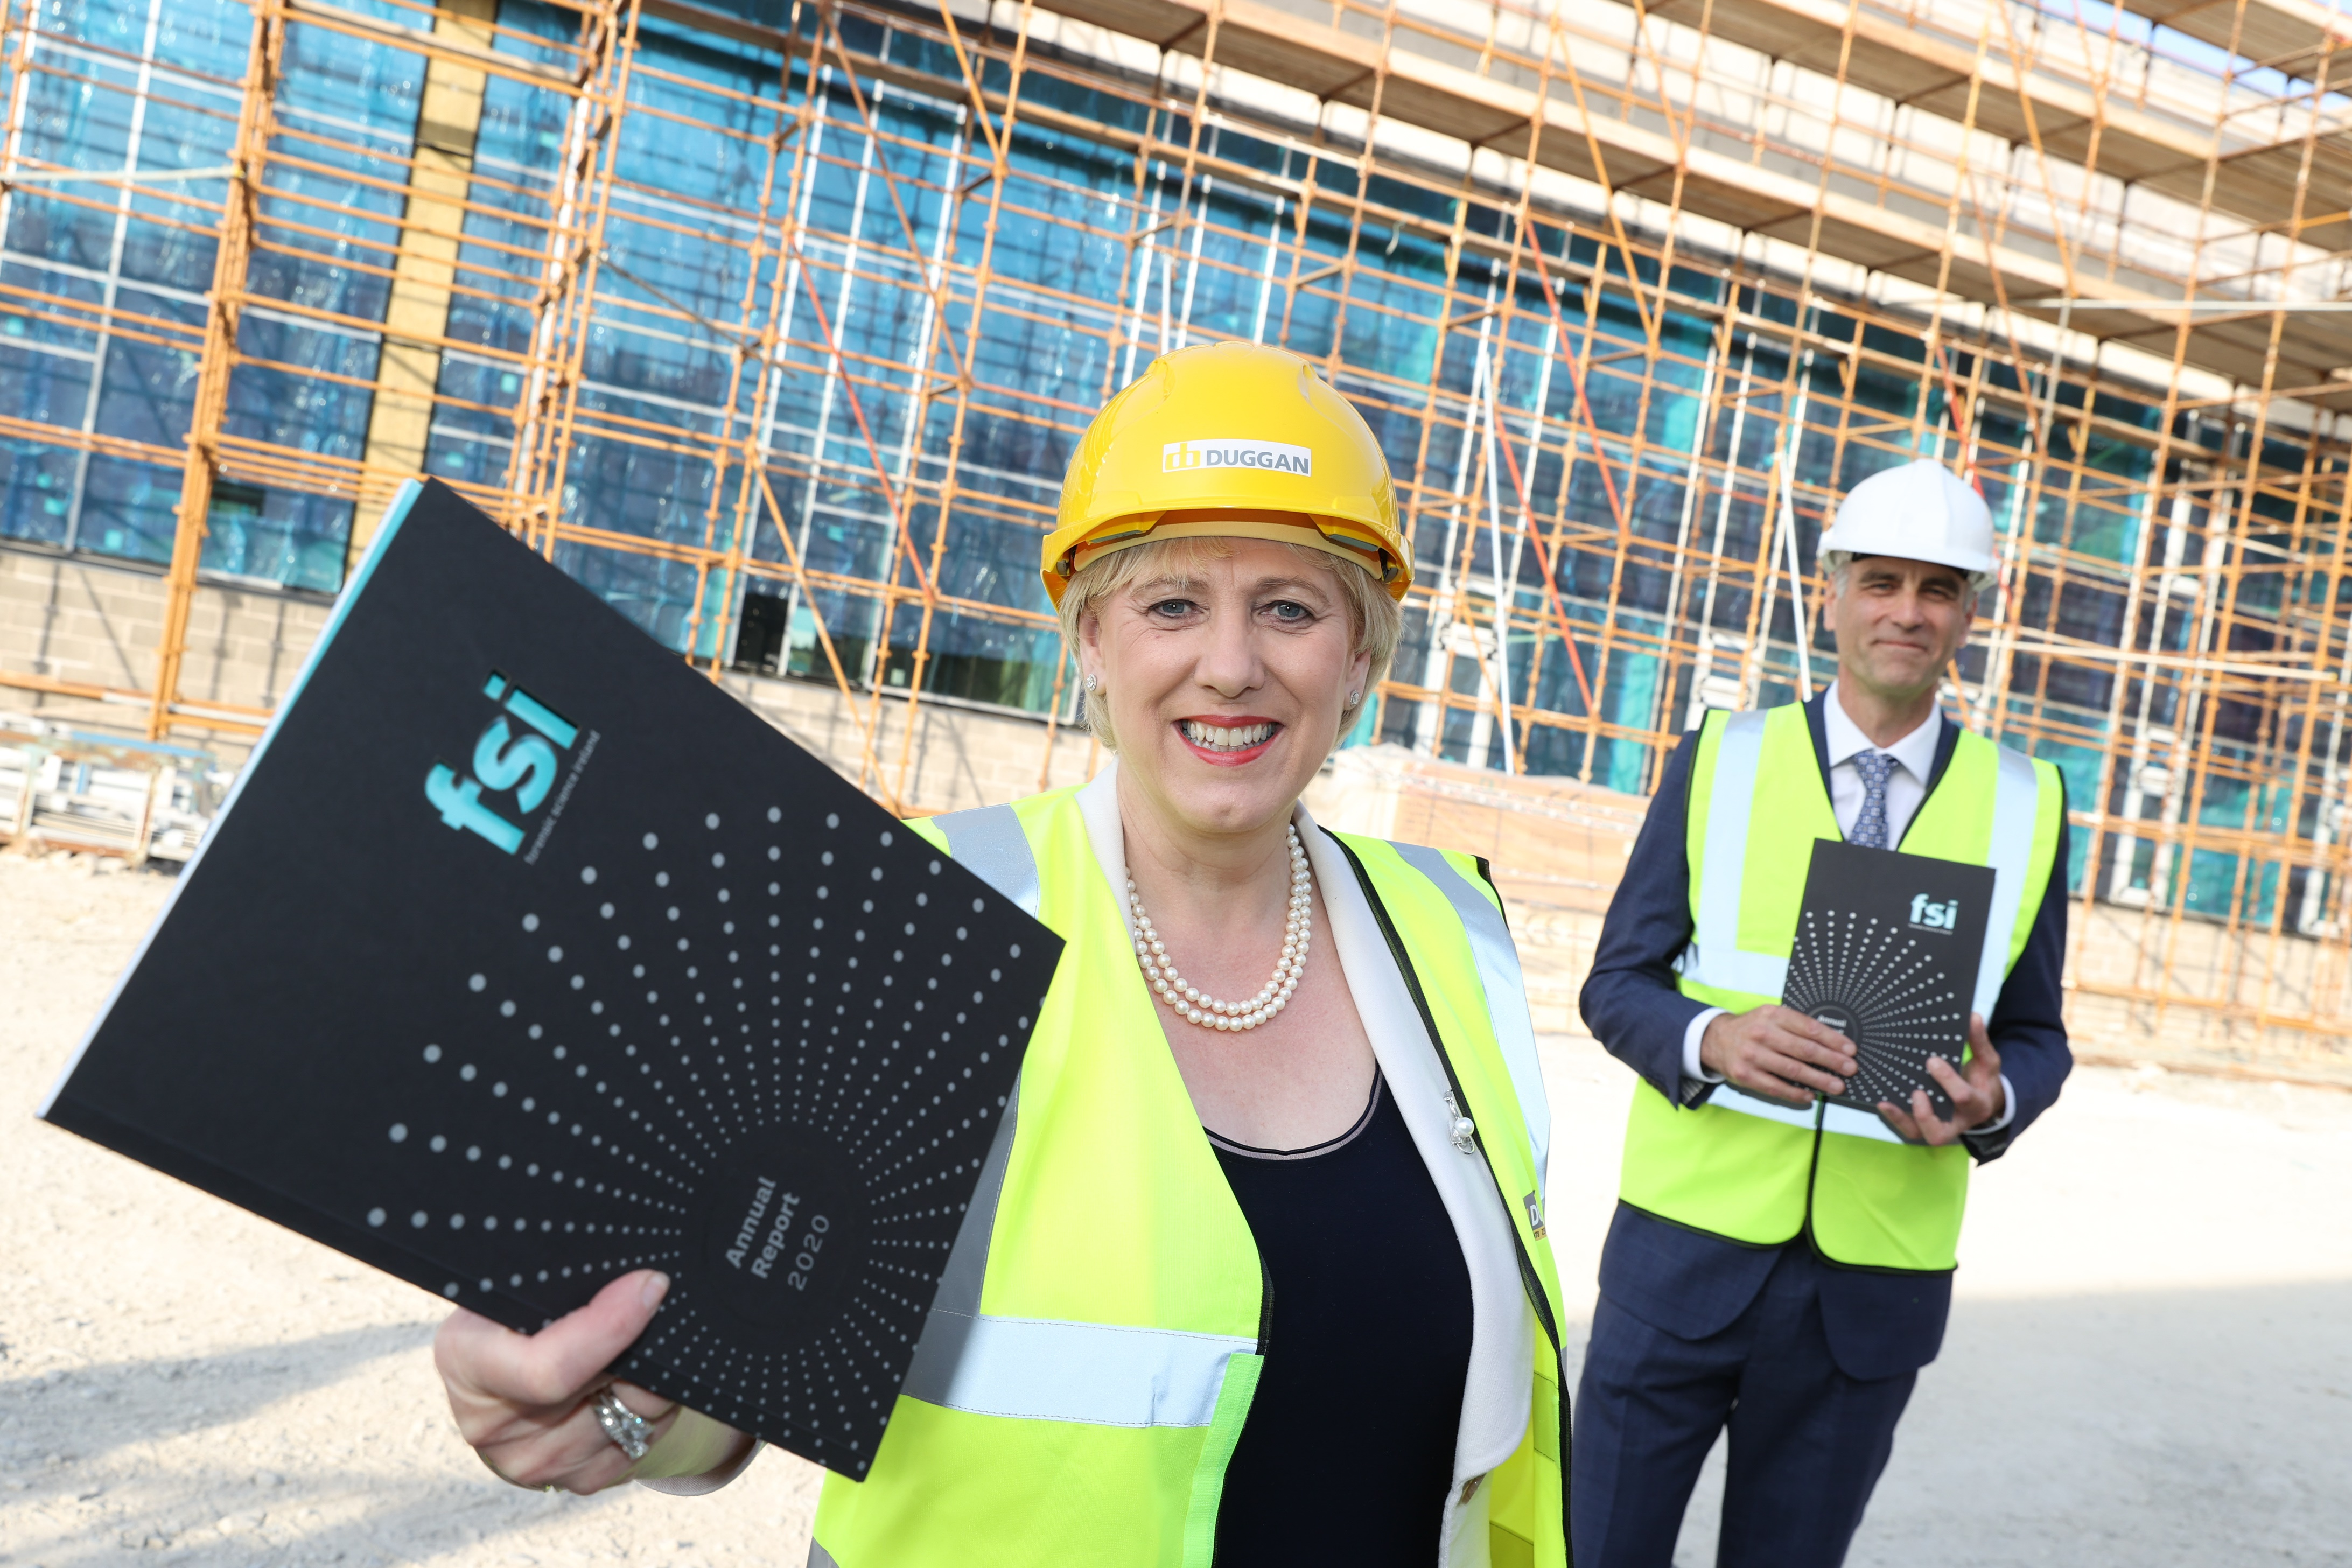 New forensic laboratory on track for completion next summer